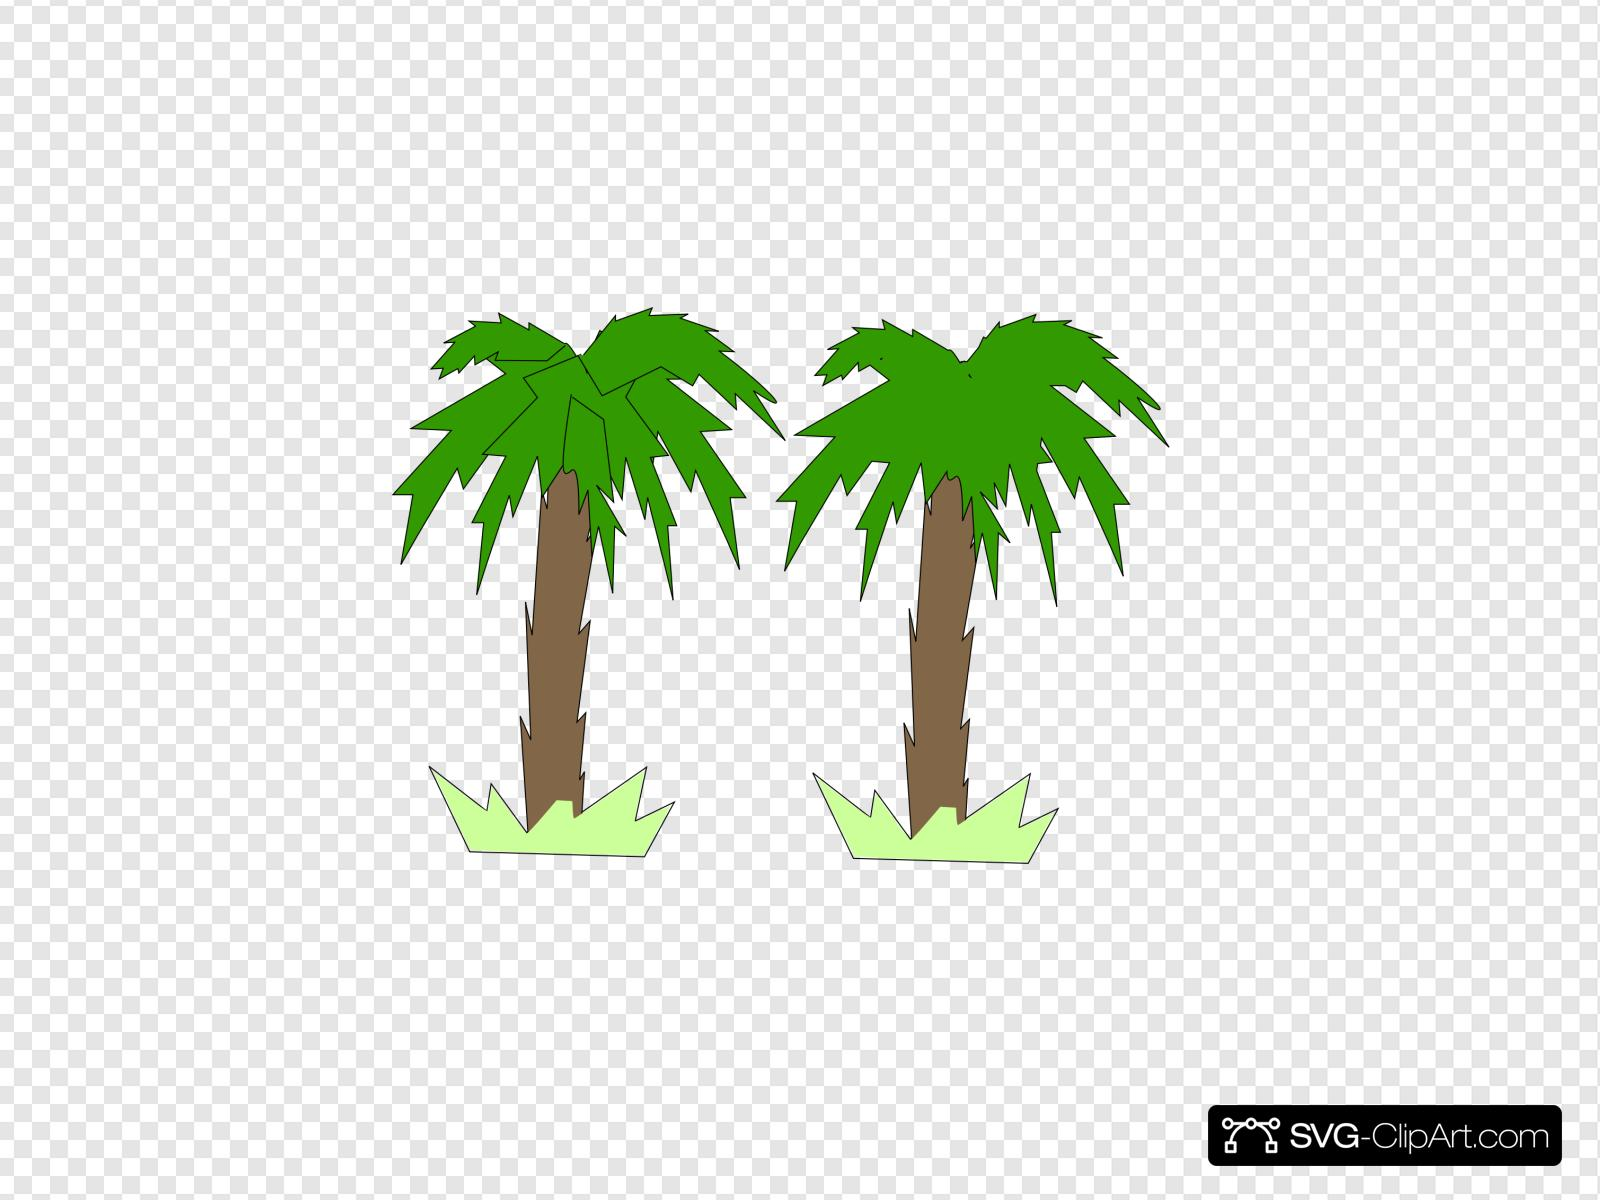 Two Palm Trees Clip art, Icon and SVG.